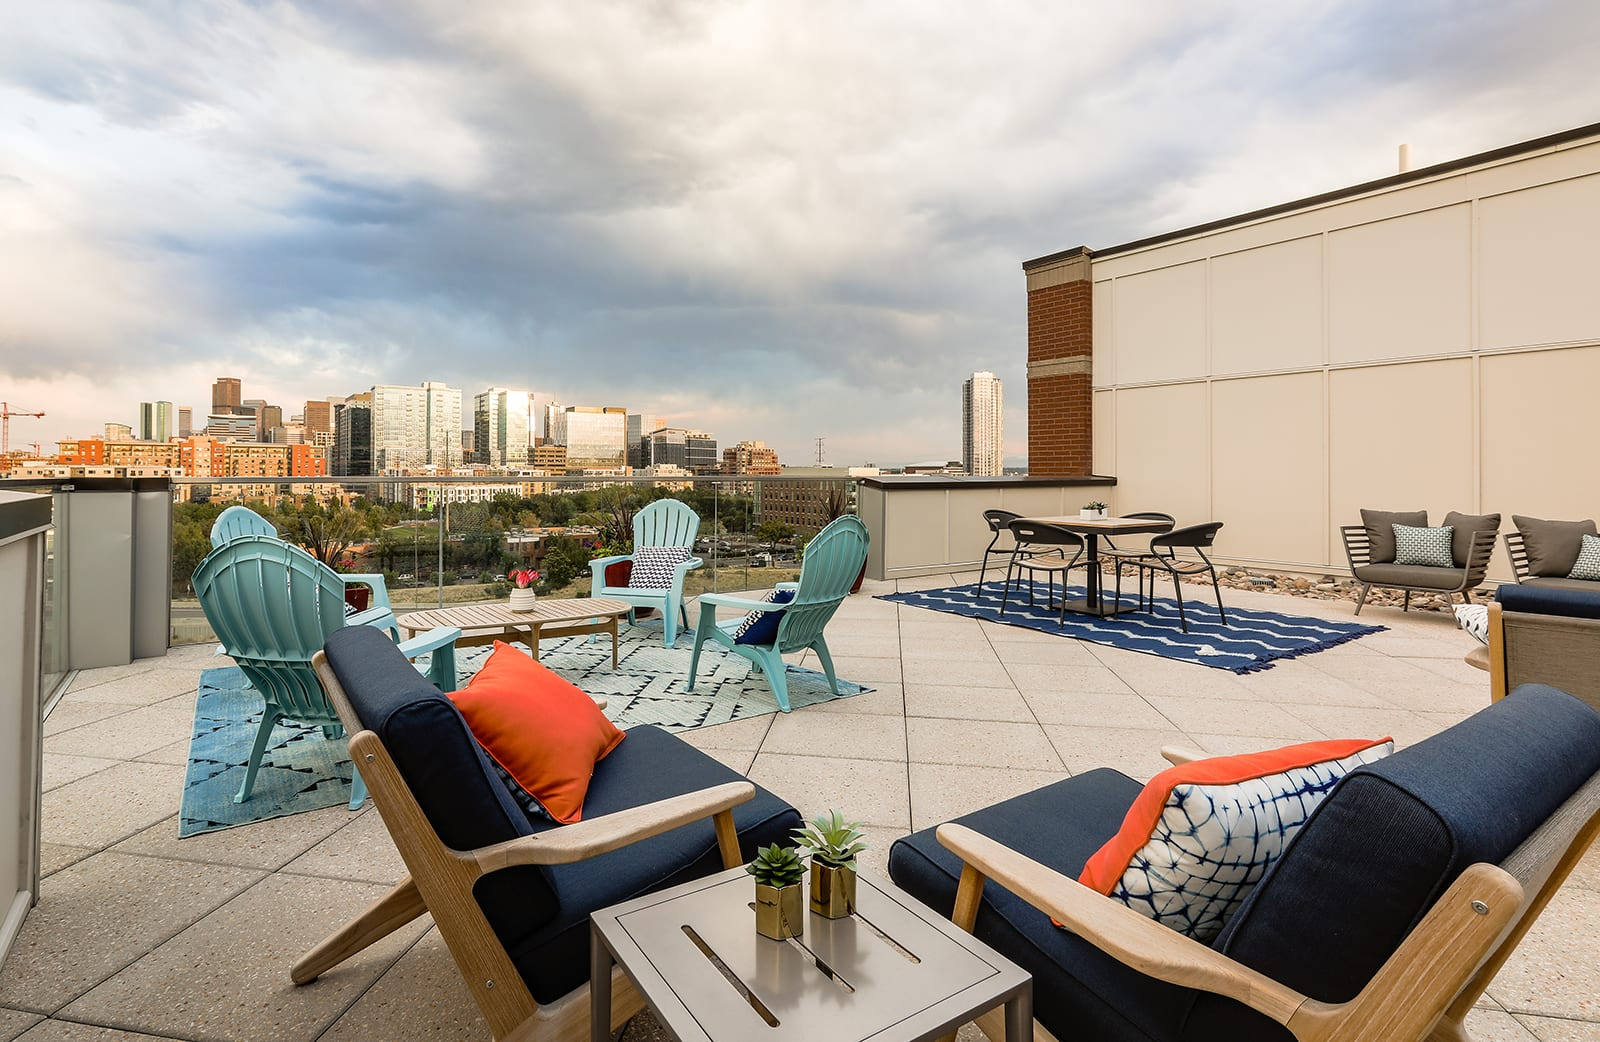 Lounge Furniture And Outdoor Dining Table With A Stunning Skyline Backdrop at Centric LoHi by Windsor, CO, 80211